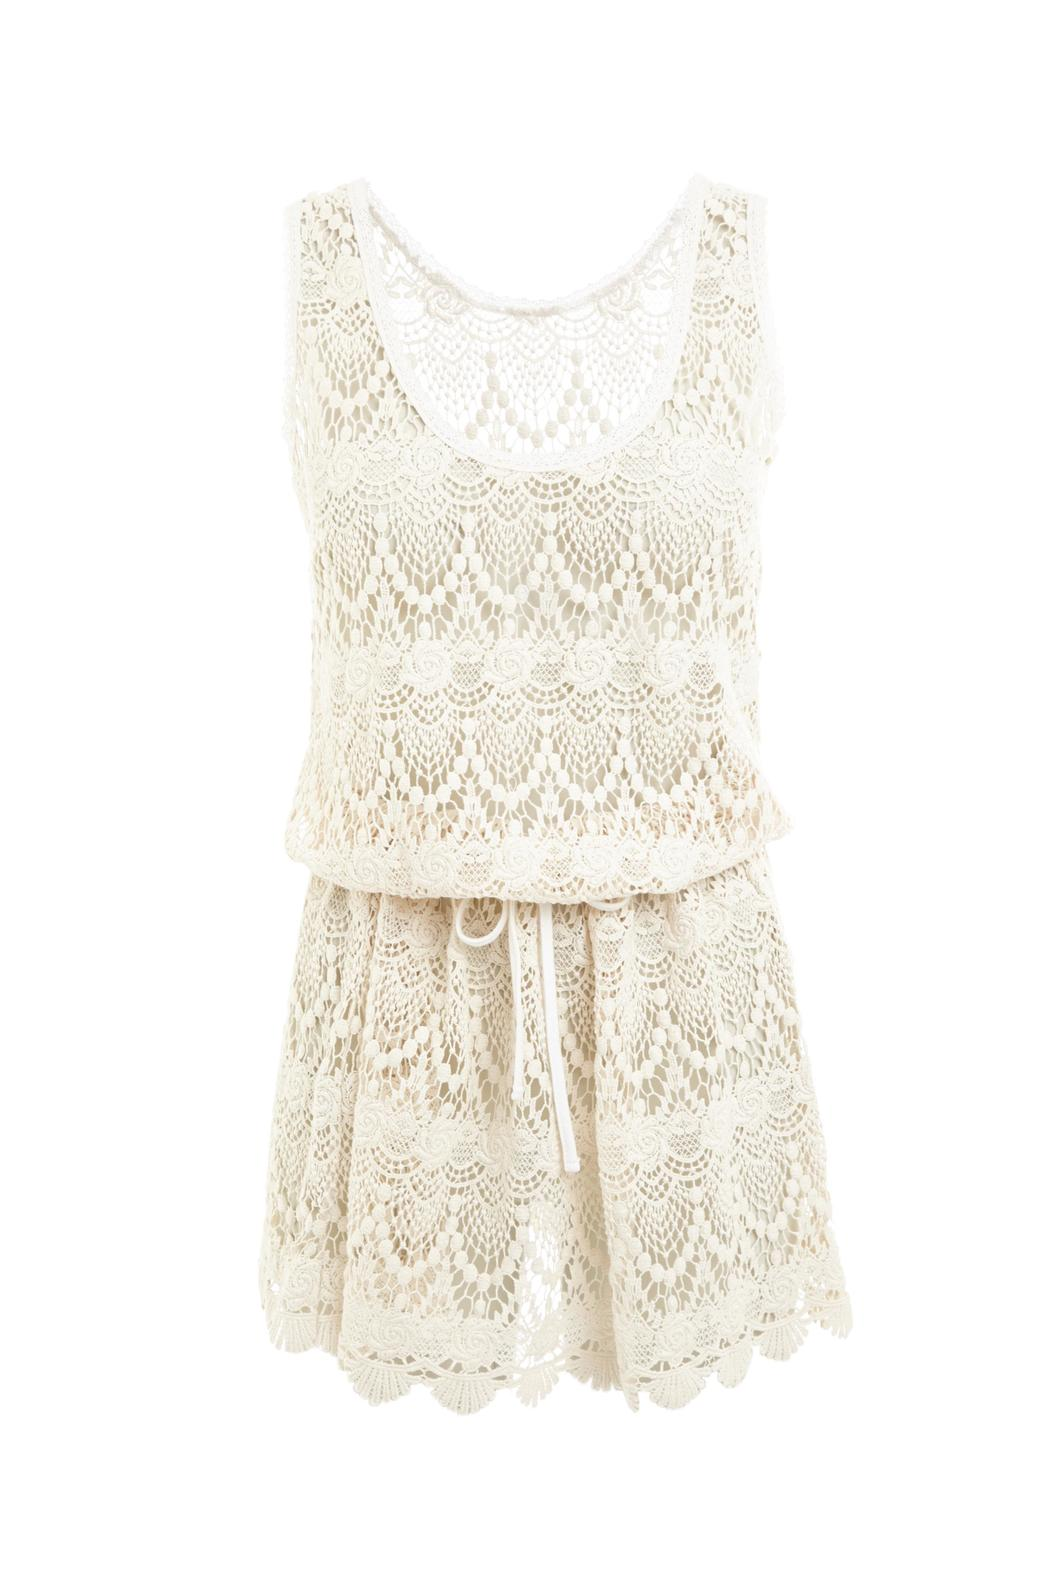 Melissa Odabash Alison Cream Lace Dress - Main Image